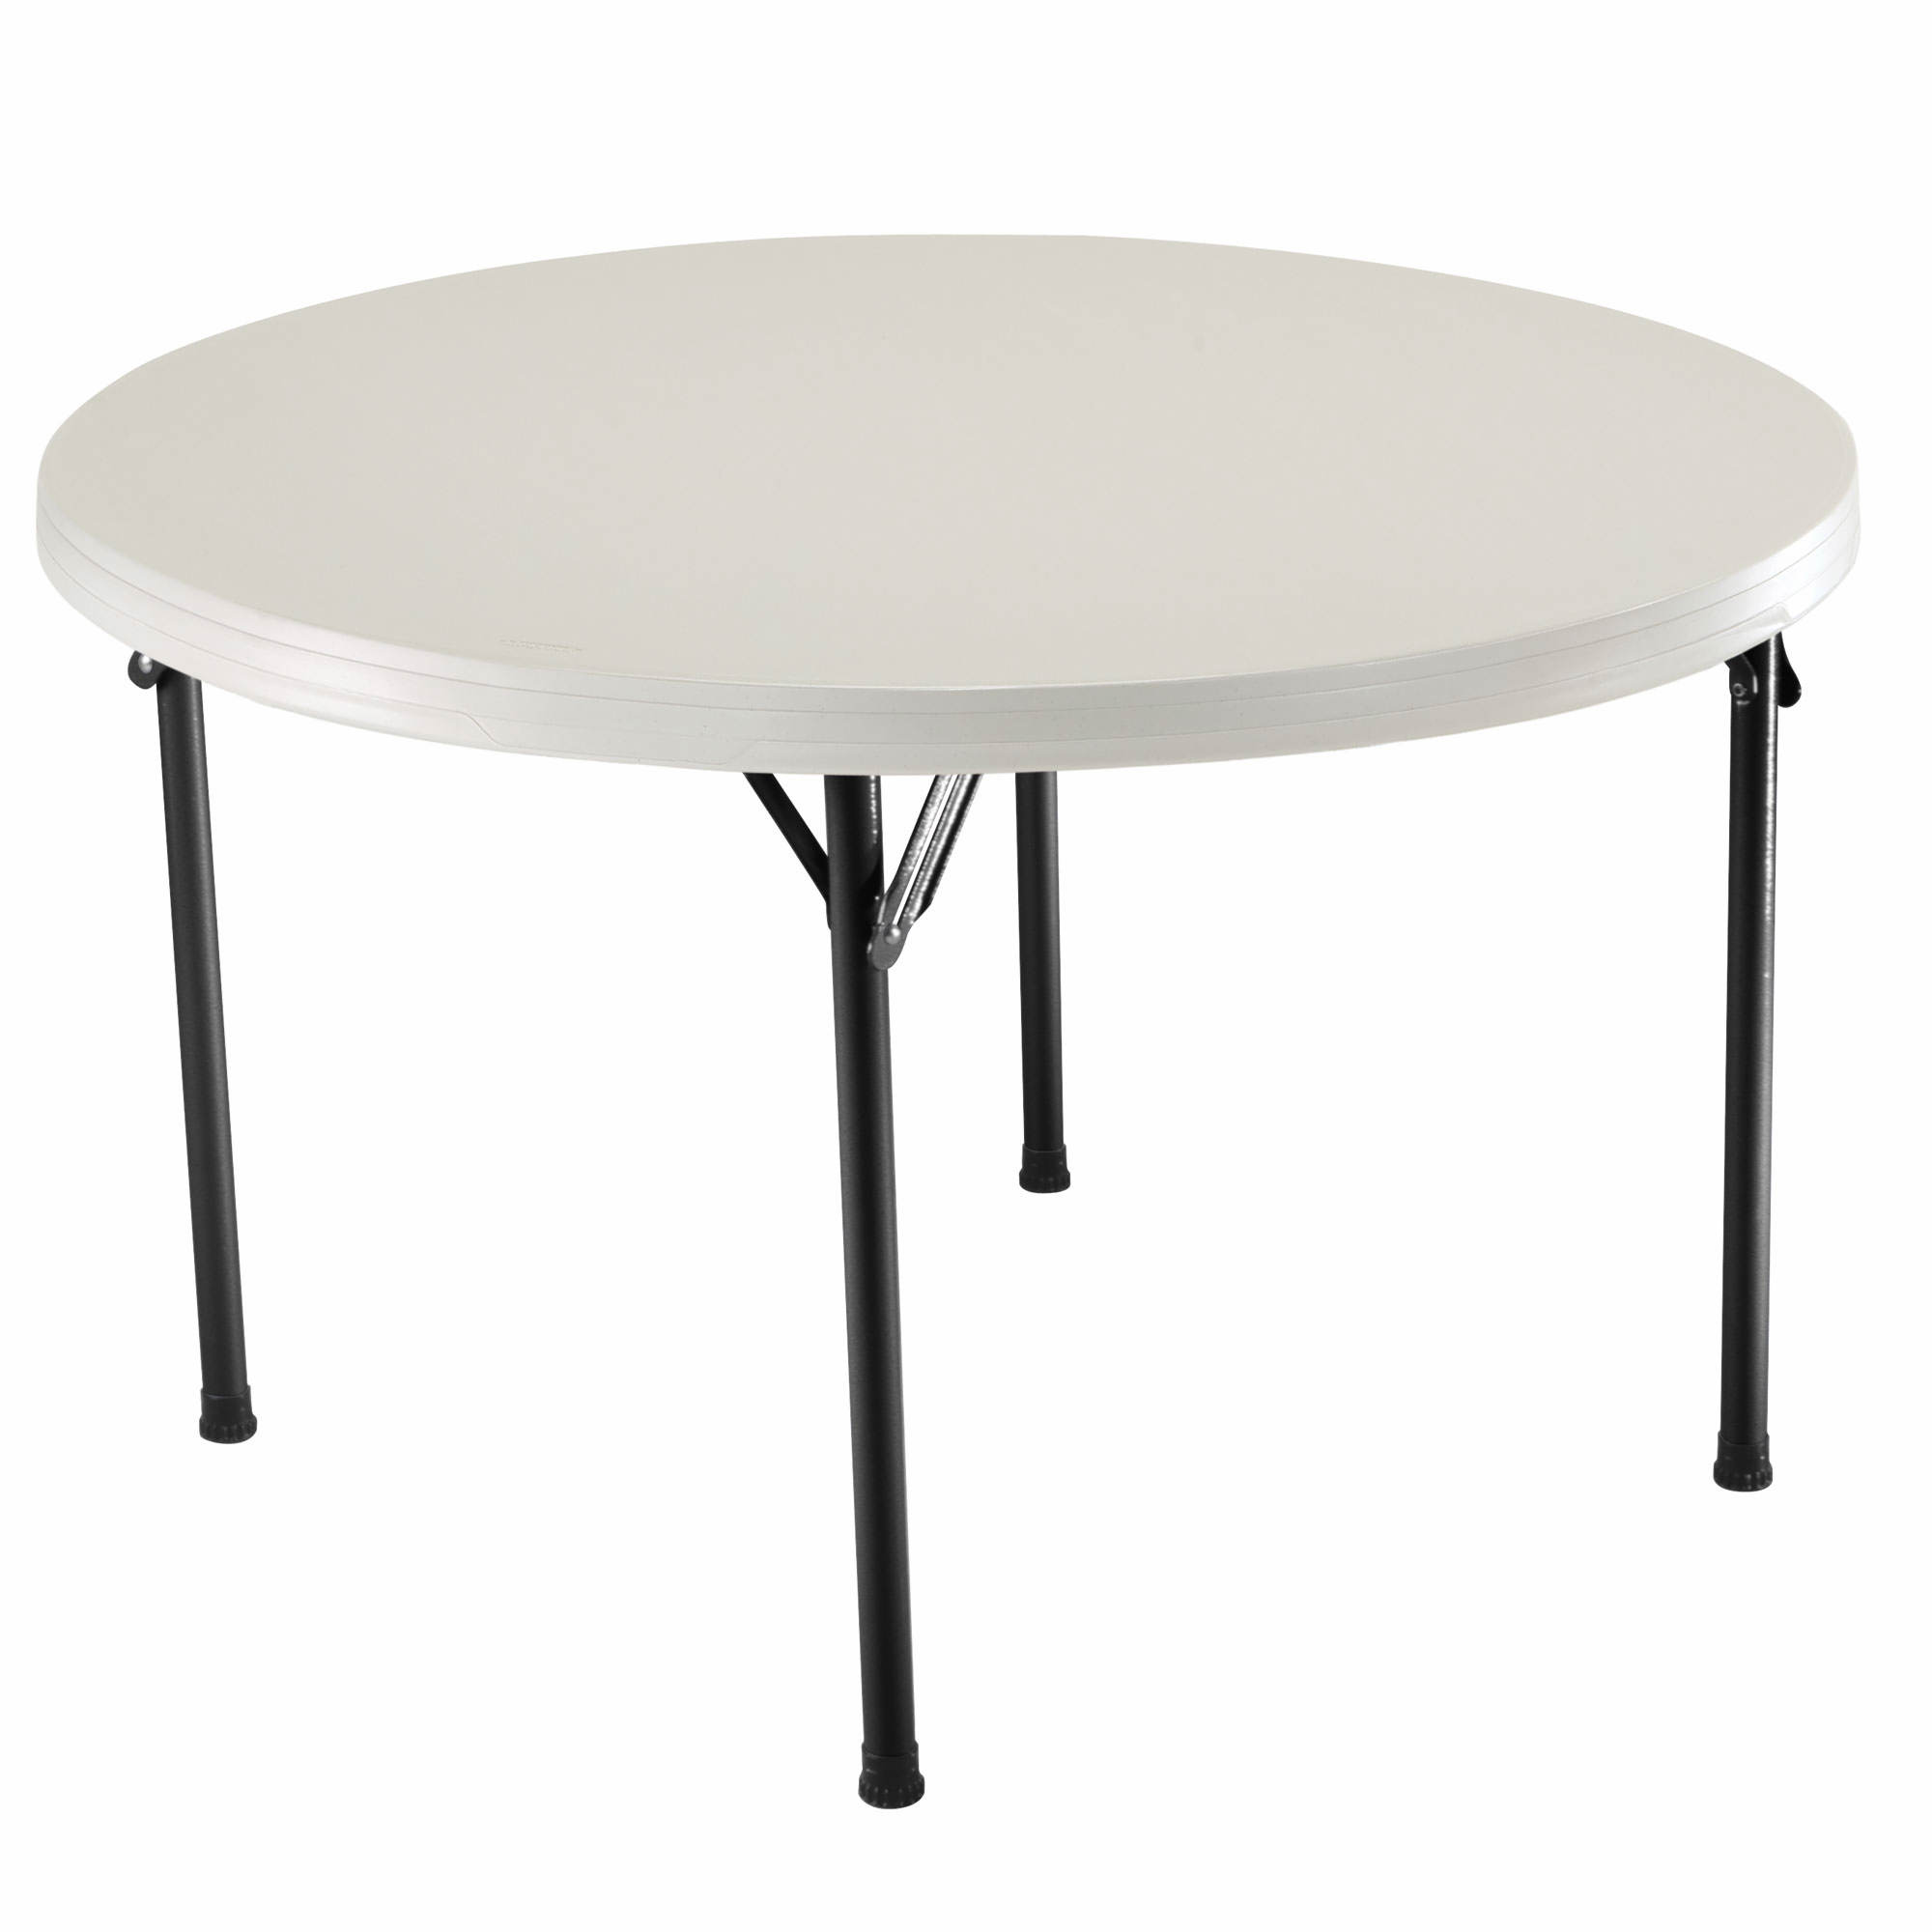 Fold In Half Round Table Folding Card Tables Bjs Wholesale Club